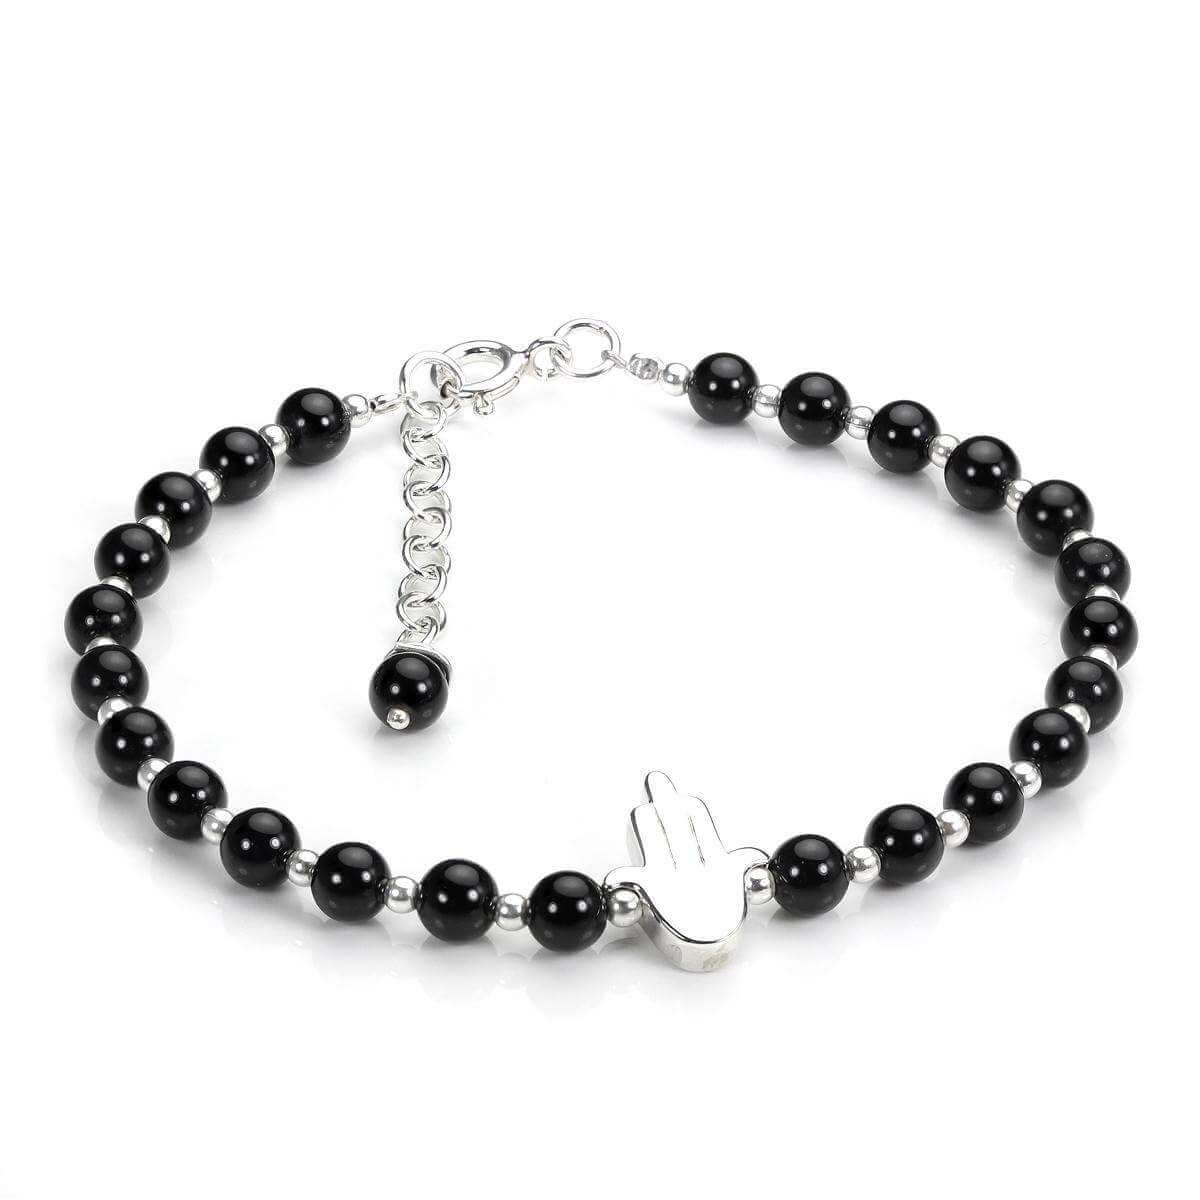 Sterling Silver & Black Agate Adjustable Bracelet with Hamsa Charm